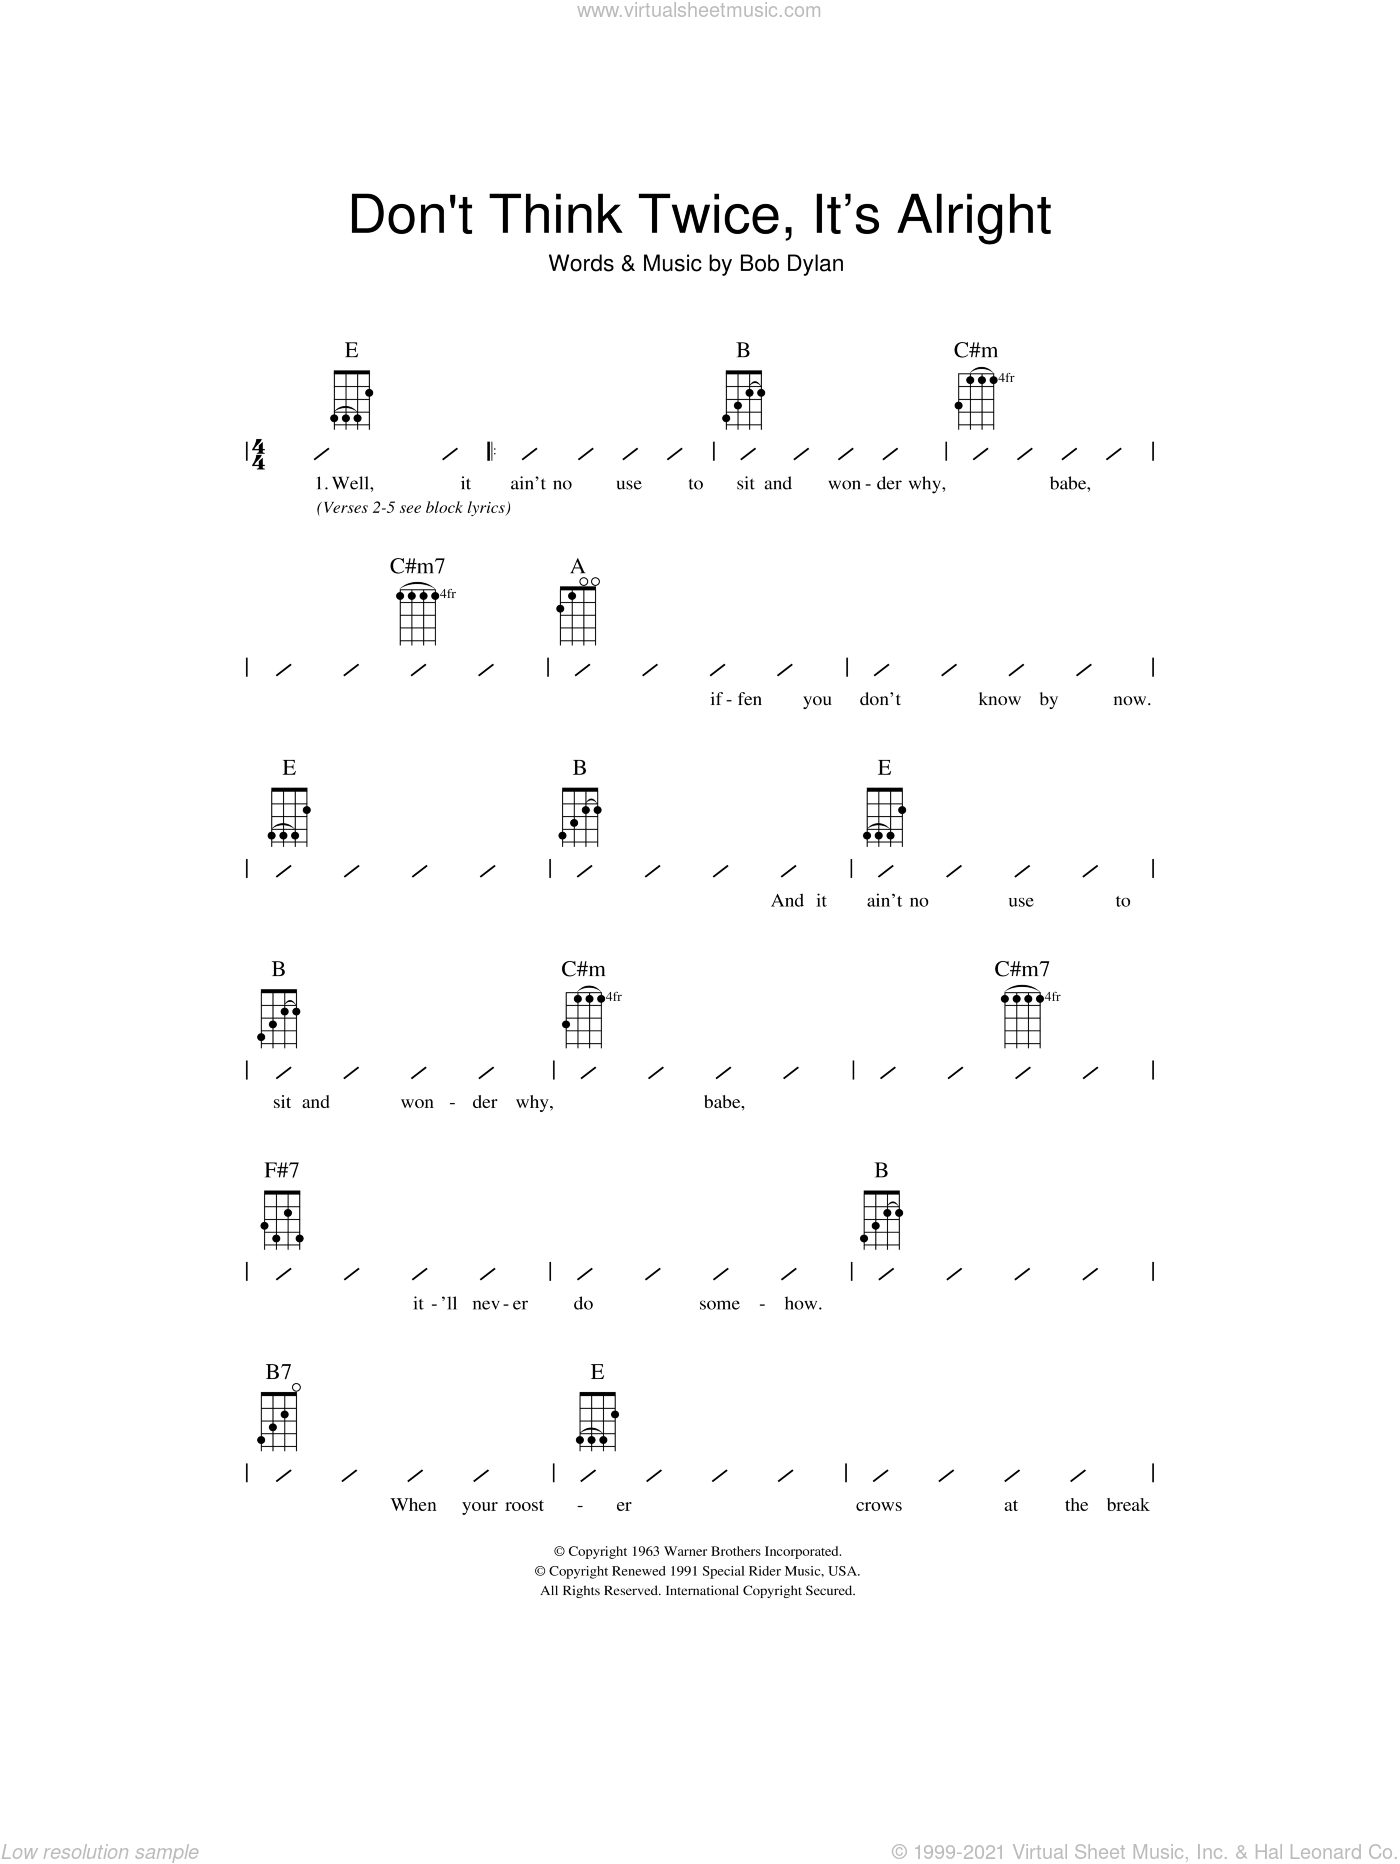 Don't Think Twice, It's All Right sheet music for ukulele (chords) by Bob Dylan, intermediate skill level